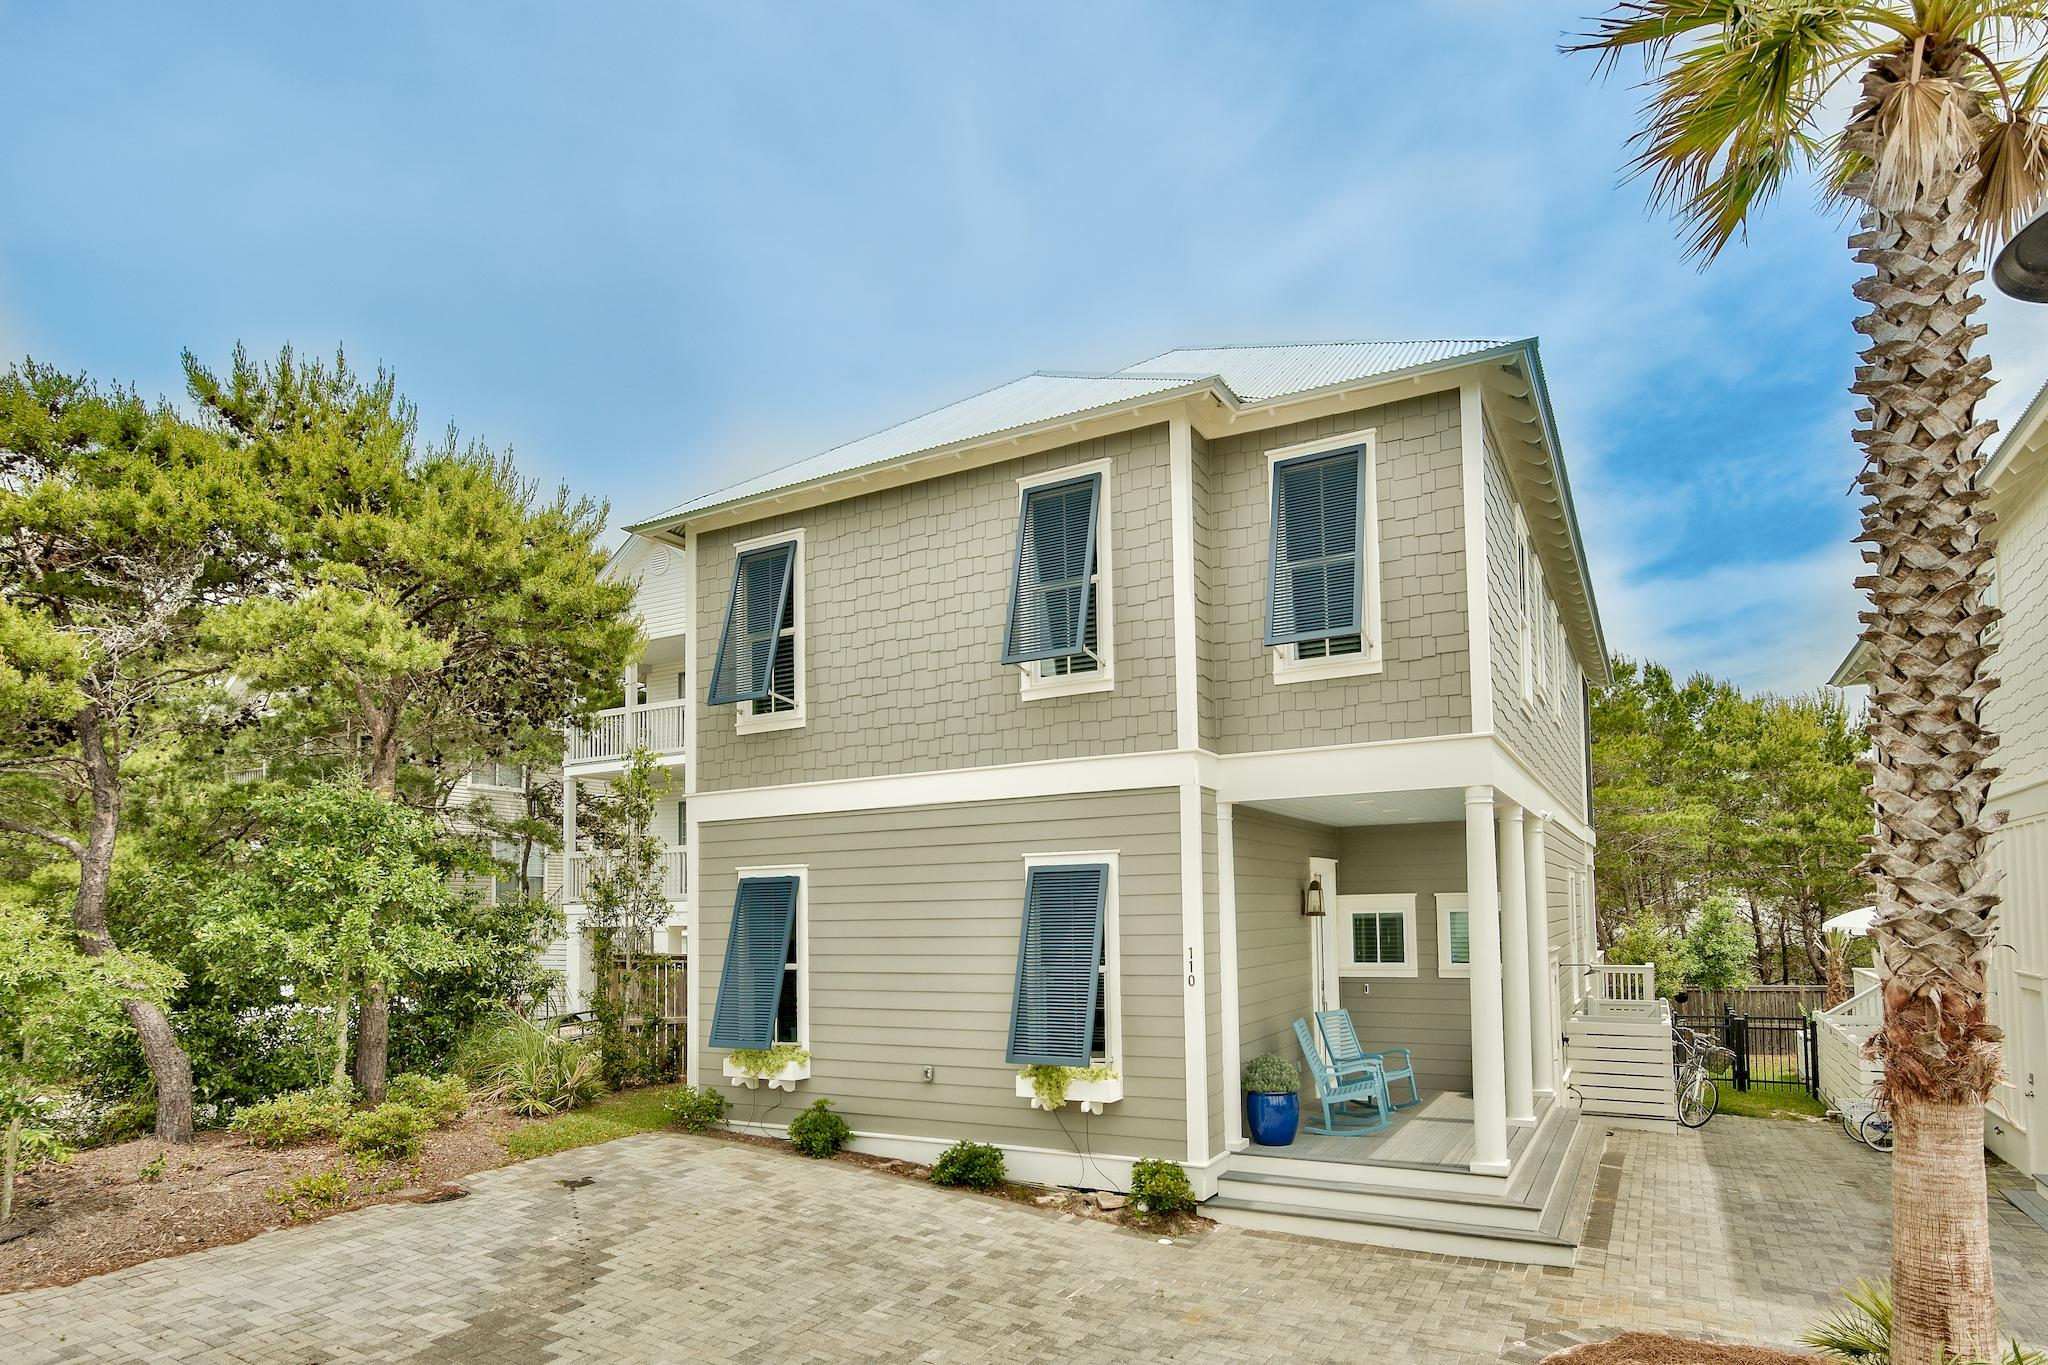 It's AVAILABLE!! No fault to the seller -  This is your opportunity to own a turnkey 4 bed/4 bath gem in sought after Blue Mountain Beach and on beautiful palm-lined private street, just steps from shops, restaurants and 7-10 min walk to the beach!  This  custom-modified 2018 built Palm Floor Plan is top-notch w/smart home technology including Ring Security Doorbell, Yale key remote capable  front entry lock, 3 Ring exterior security cameras, 2 Nest Thermostats, Omni-Logic Remote Pool Controller, distributed wi-fi throughout home, plus built-in Sonos/Alexa ceiling speakers. You'll find high-end upgrades throughout w/expertly appointed furnishing & finishes featuring  10' ceilings on 1st & 2nd, 2 Master King Suites, open main level floor plan w/75'' Sony Smart TV + 52'' Sony Smart TV in all bedrooms, tankless water, shiplap walls throughout interior, beautiful decor & quality furnishings, Kohler commodes in all 4 bathrooms, nicely landscaped w/ fenced backyard, front paver area accommodates 3 vehicles + a golf cart!  Kitchen features shaker custom cabinets w/lighting, oversized island, quartz counters, glossy glass backsplash, ss Bosch appliances dual-fuel 5-burner stove, French door refrigerator w/ice maker, built-in microwave & Kitchen Aide DW.  8' glass French doors lead to exterior living space w/private heated salt water pool w/LED lights & expansive pool deck. Upstairs you'll find the 2nd Master King Ste w/designer soaking tub, sep shower, double vanity, walk-in closet & French doors that lead private screened porch. Spacious bunk room has custom built Queen/Twin bunks, plus another King Guest Bdrm.  Hall Bath has tub/shower combo & double vanity.  Walk to the beach, just 7-10 minutes away, Blue Mabel Smokehouse & Provisions, Blue Mountain Bakery, For The Health of It Health Food Store and more!  Rental projections are upwards of $100K yrly.  Dune Side at Blue Mountain Beach is a community made up of just 22 homesites in the heart of desirable Blue Mountain Bea